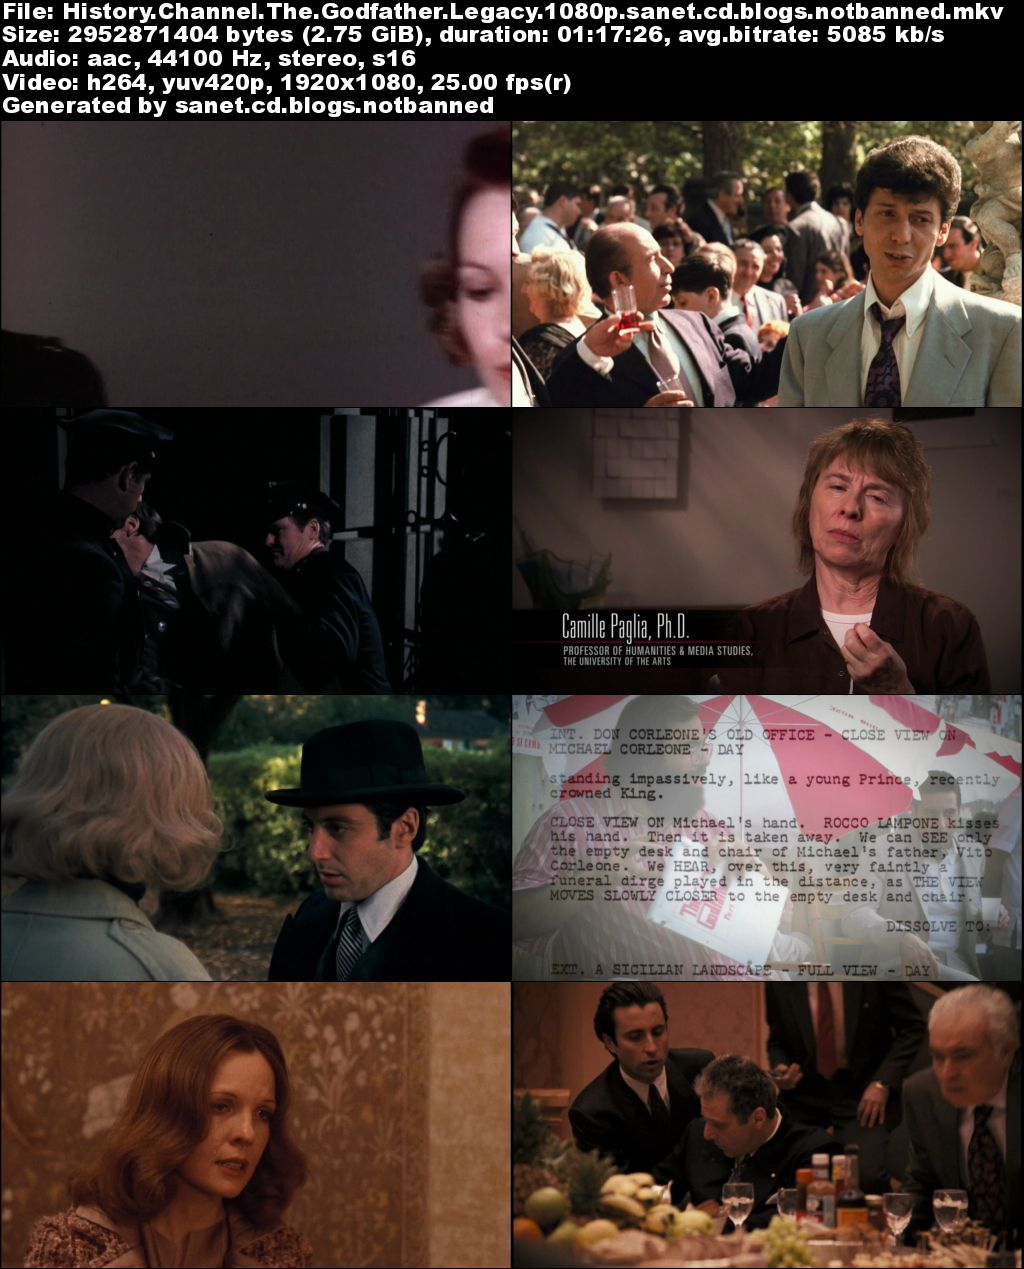 History Channel - The Godfather Legacy (2012) 1080p WEB h264-UNDERBELLY